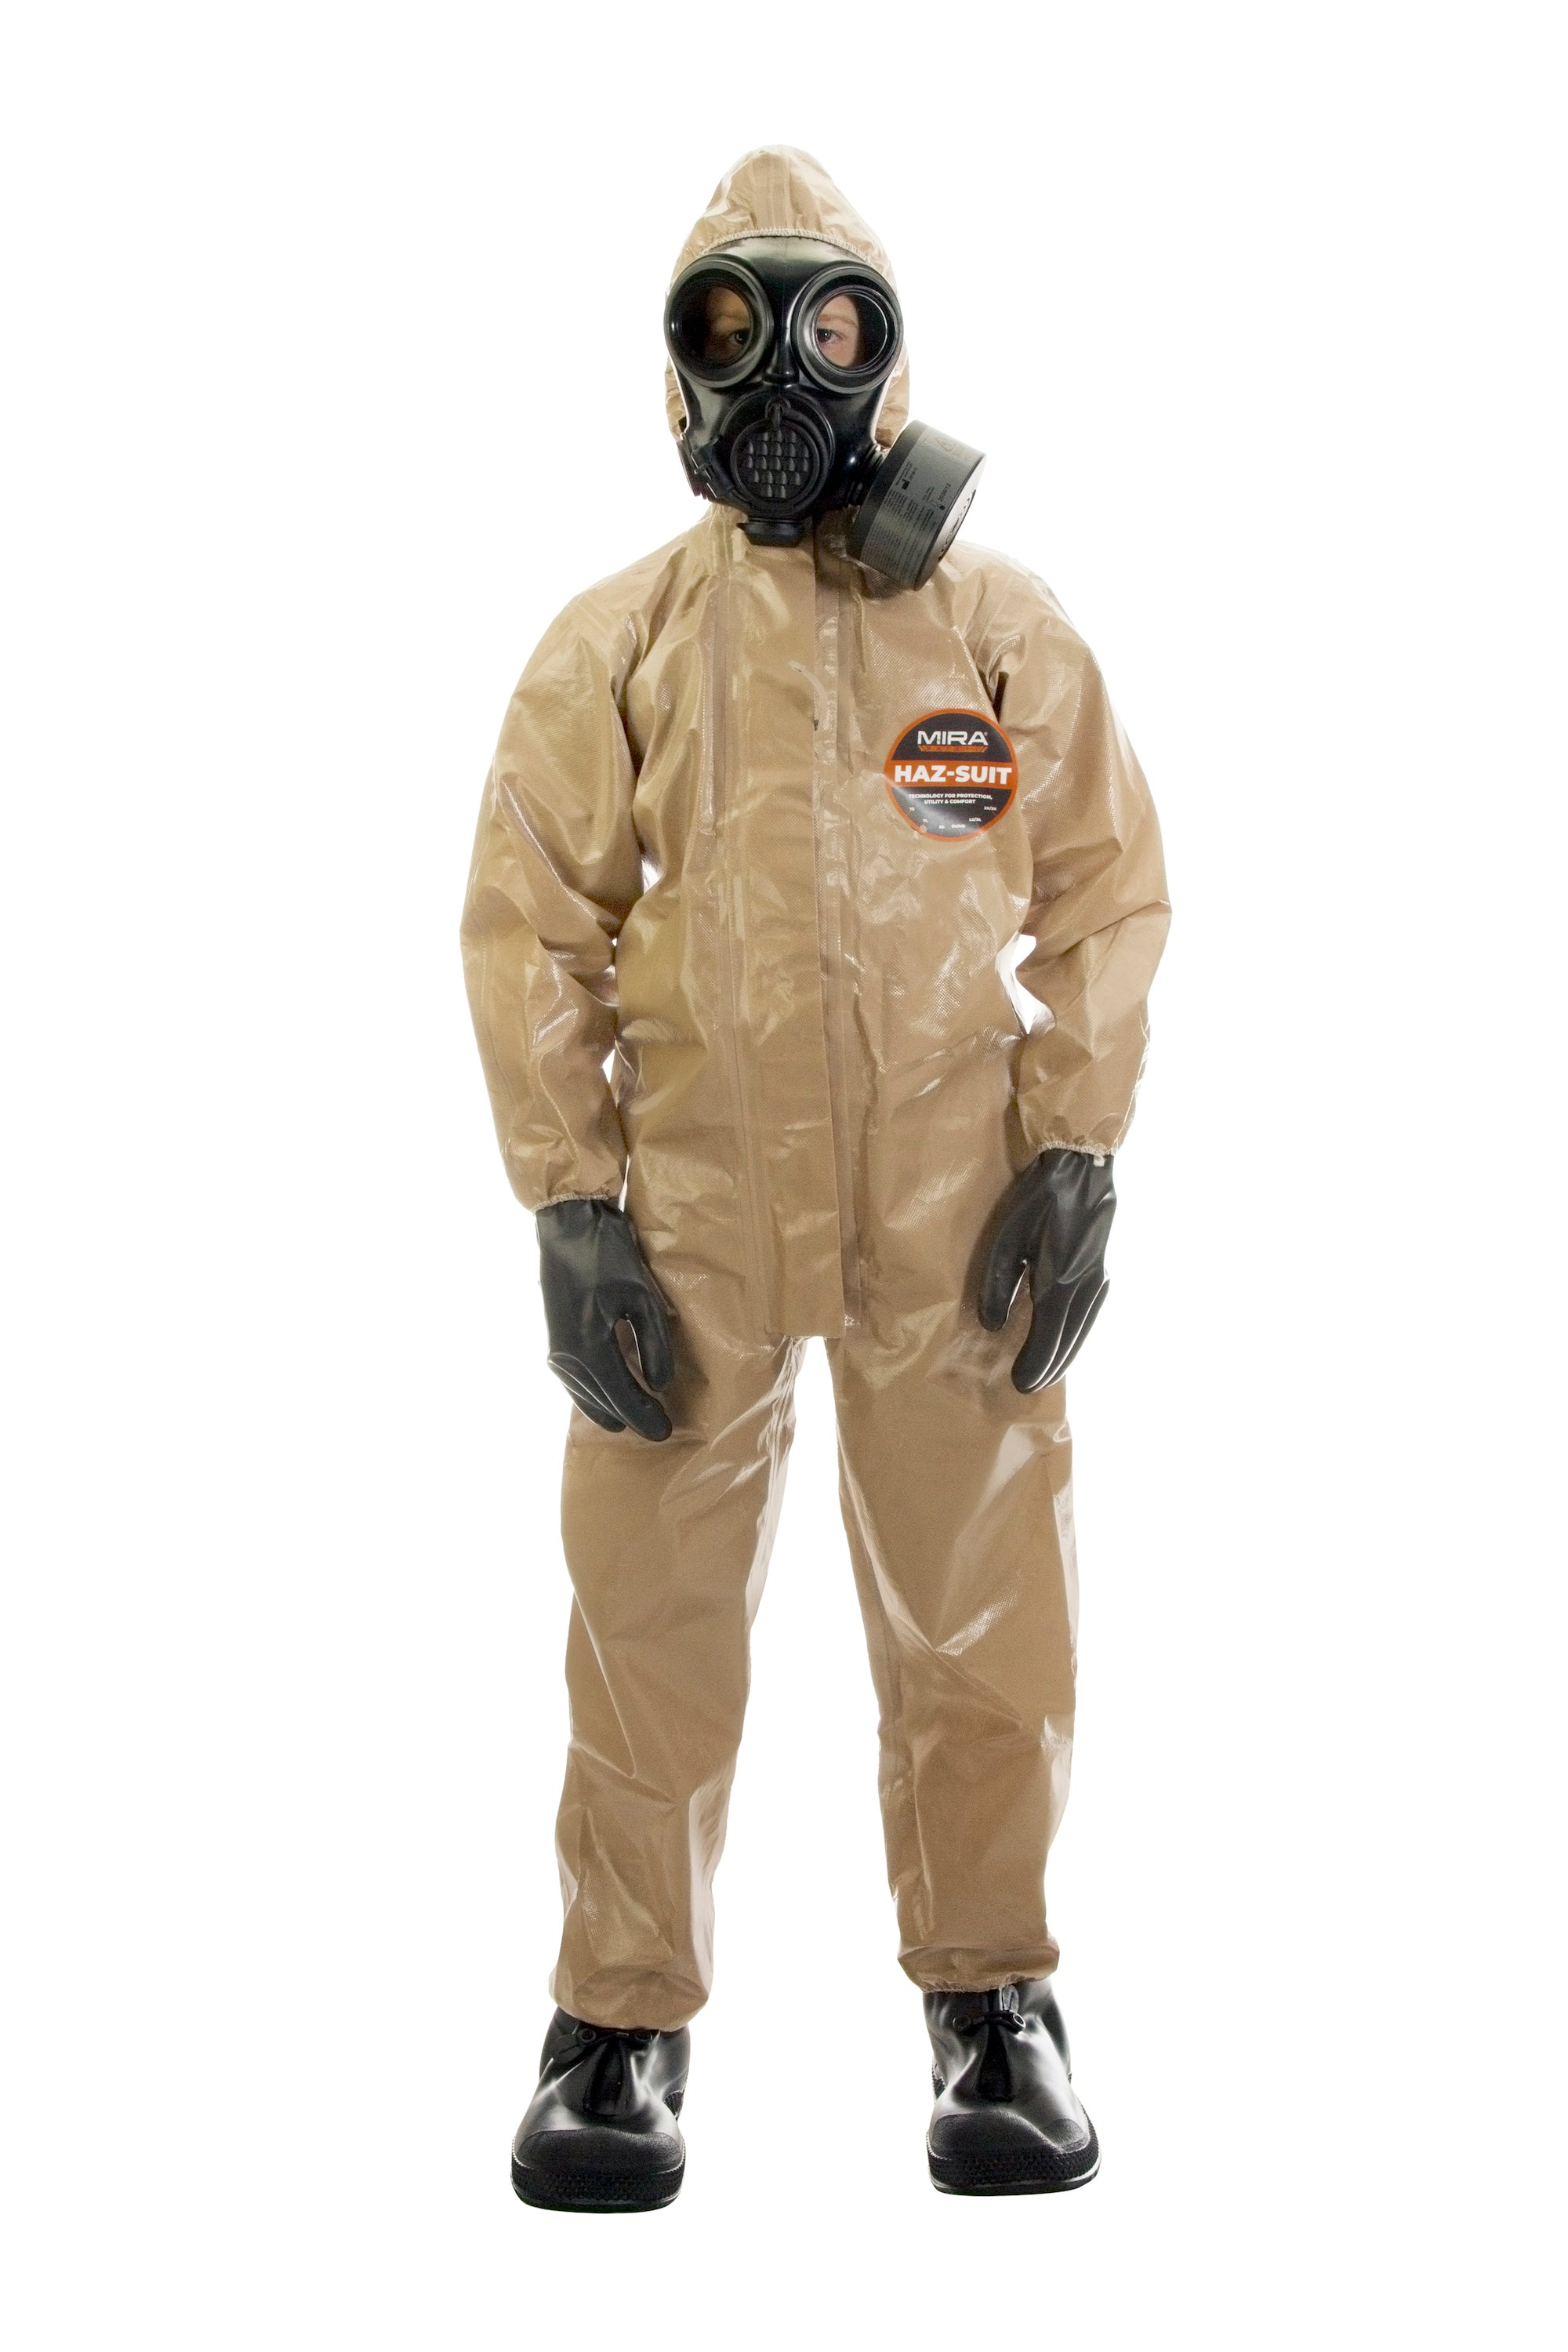 Front view of a child wearing the HAZ-SUIT HAZMAT Suit